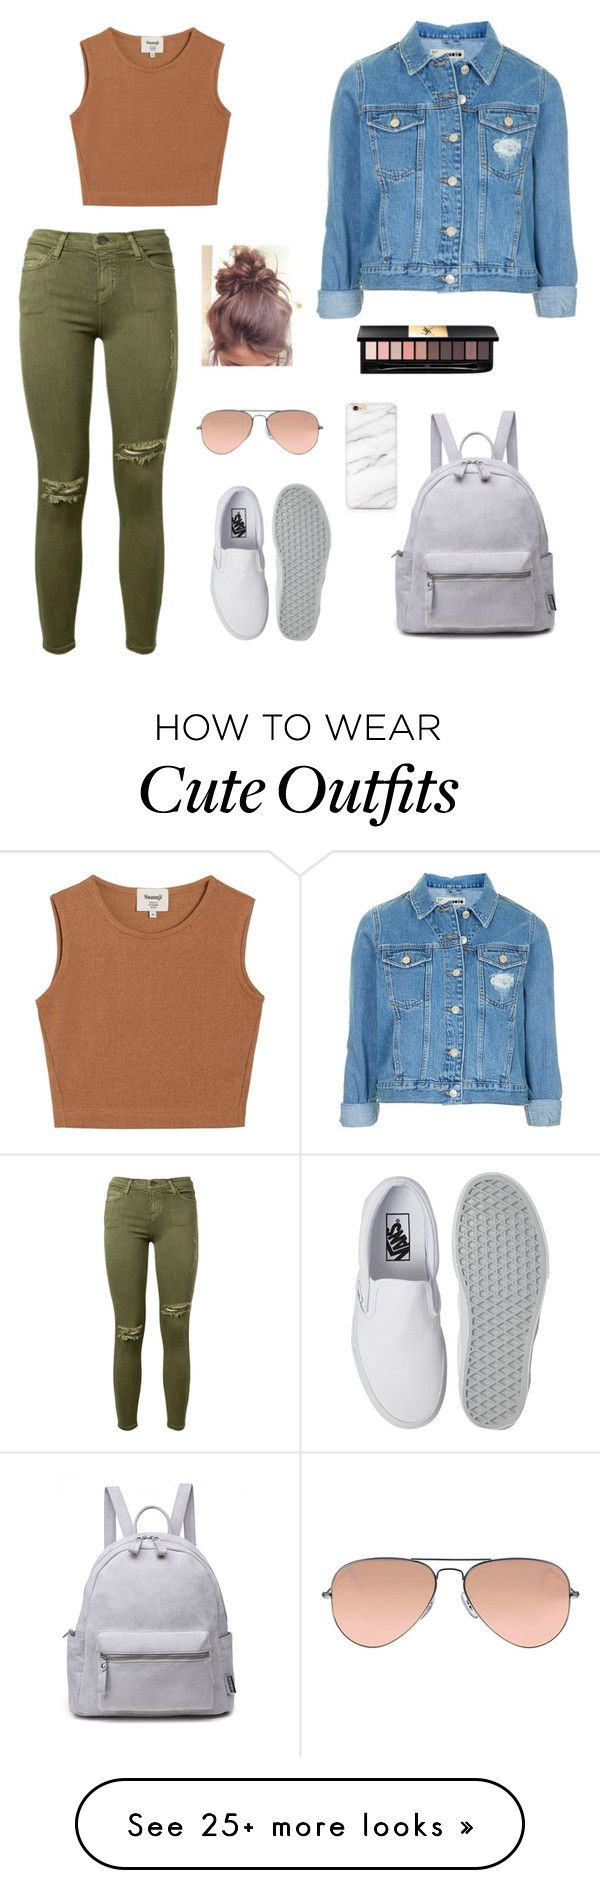 School outfits by fadeintofashion-1 on Polyvore featuring Current/Elliott, Samuji, Topshop, Vans, Ray-Ban and Yves Saint Laurent